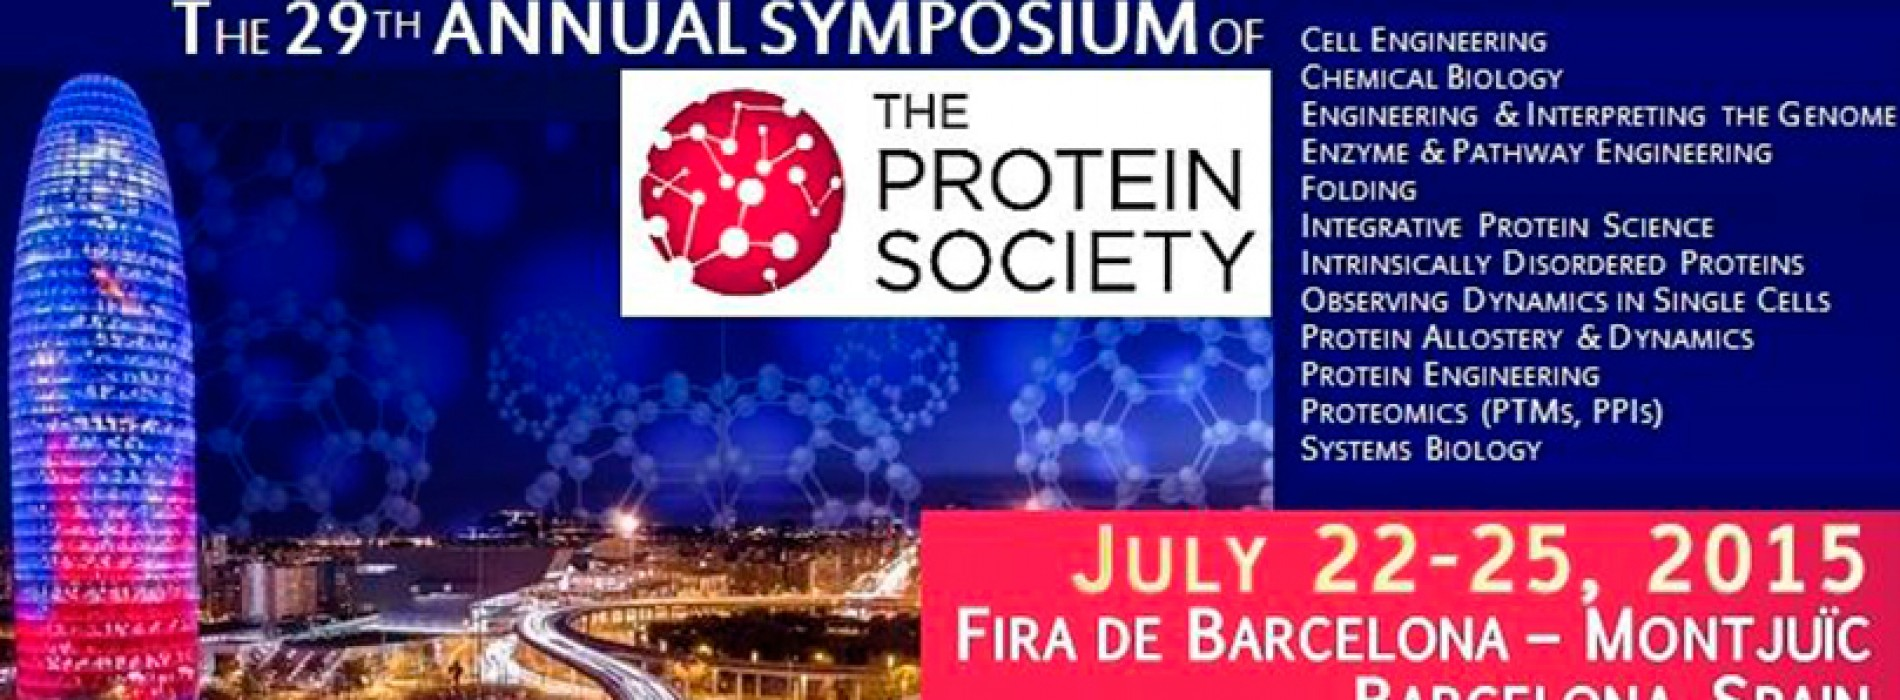 2 Weeks Left for Early Registration & Young Investigator Talk Abstracts